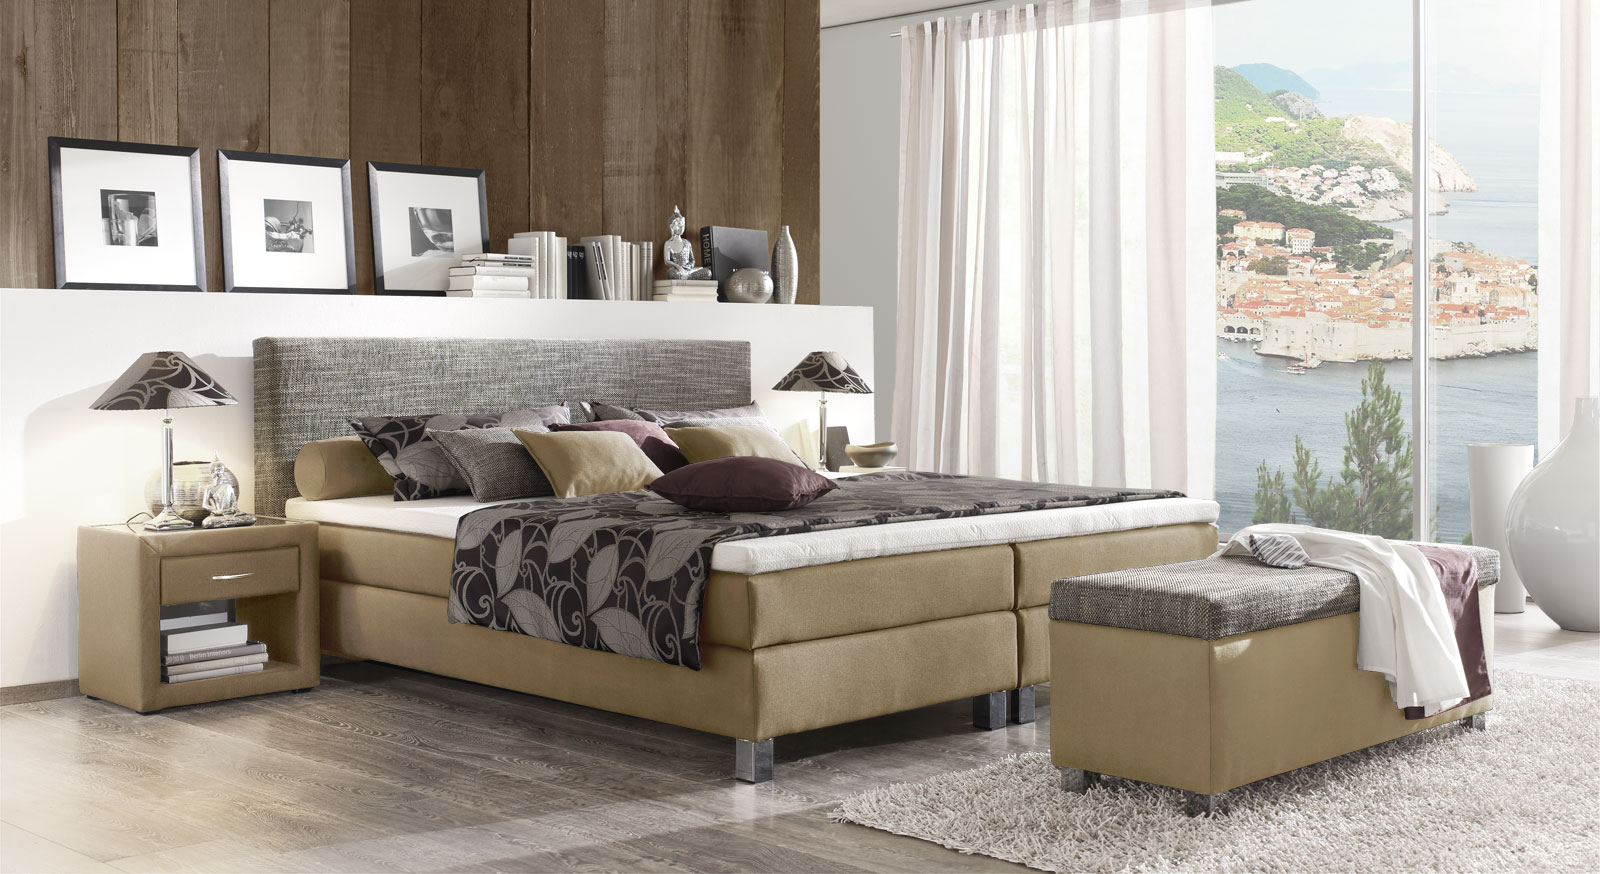 wandgestaltung wohnzimmer beige braun kreative deko. Black Bedroom Furniture Sets. Home Design Ideas